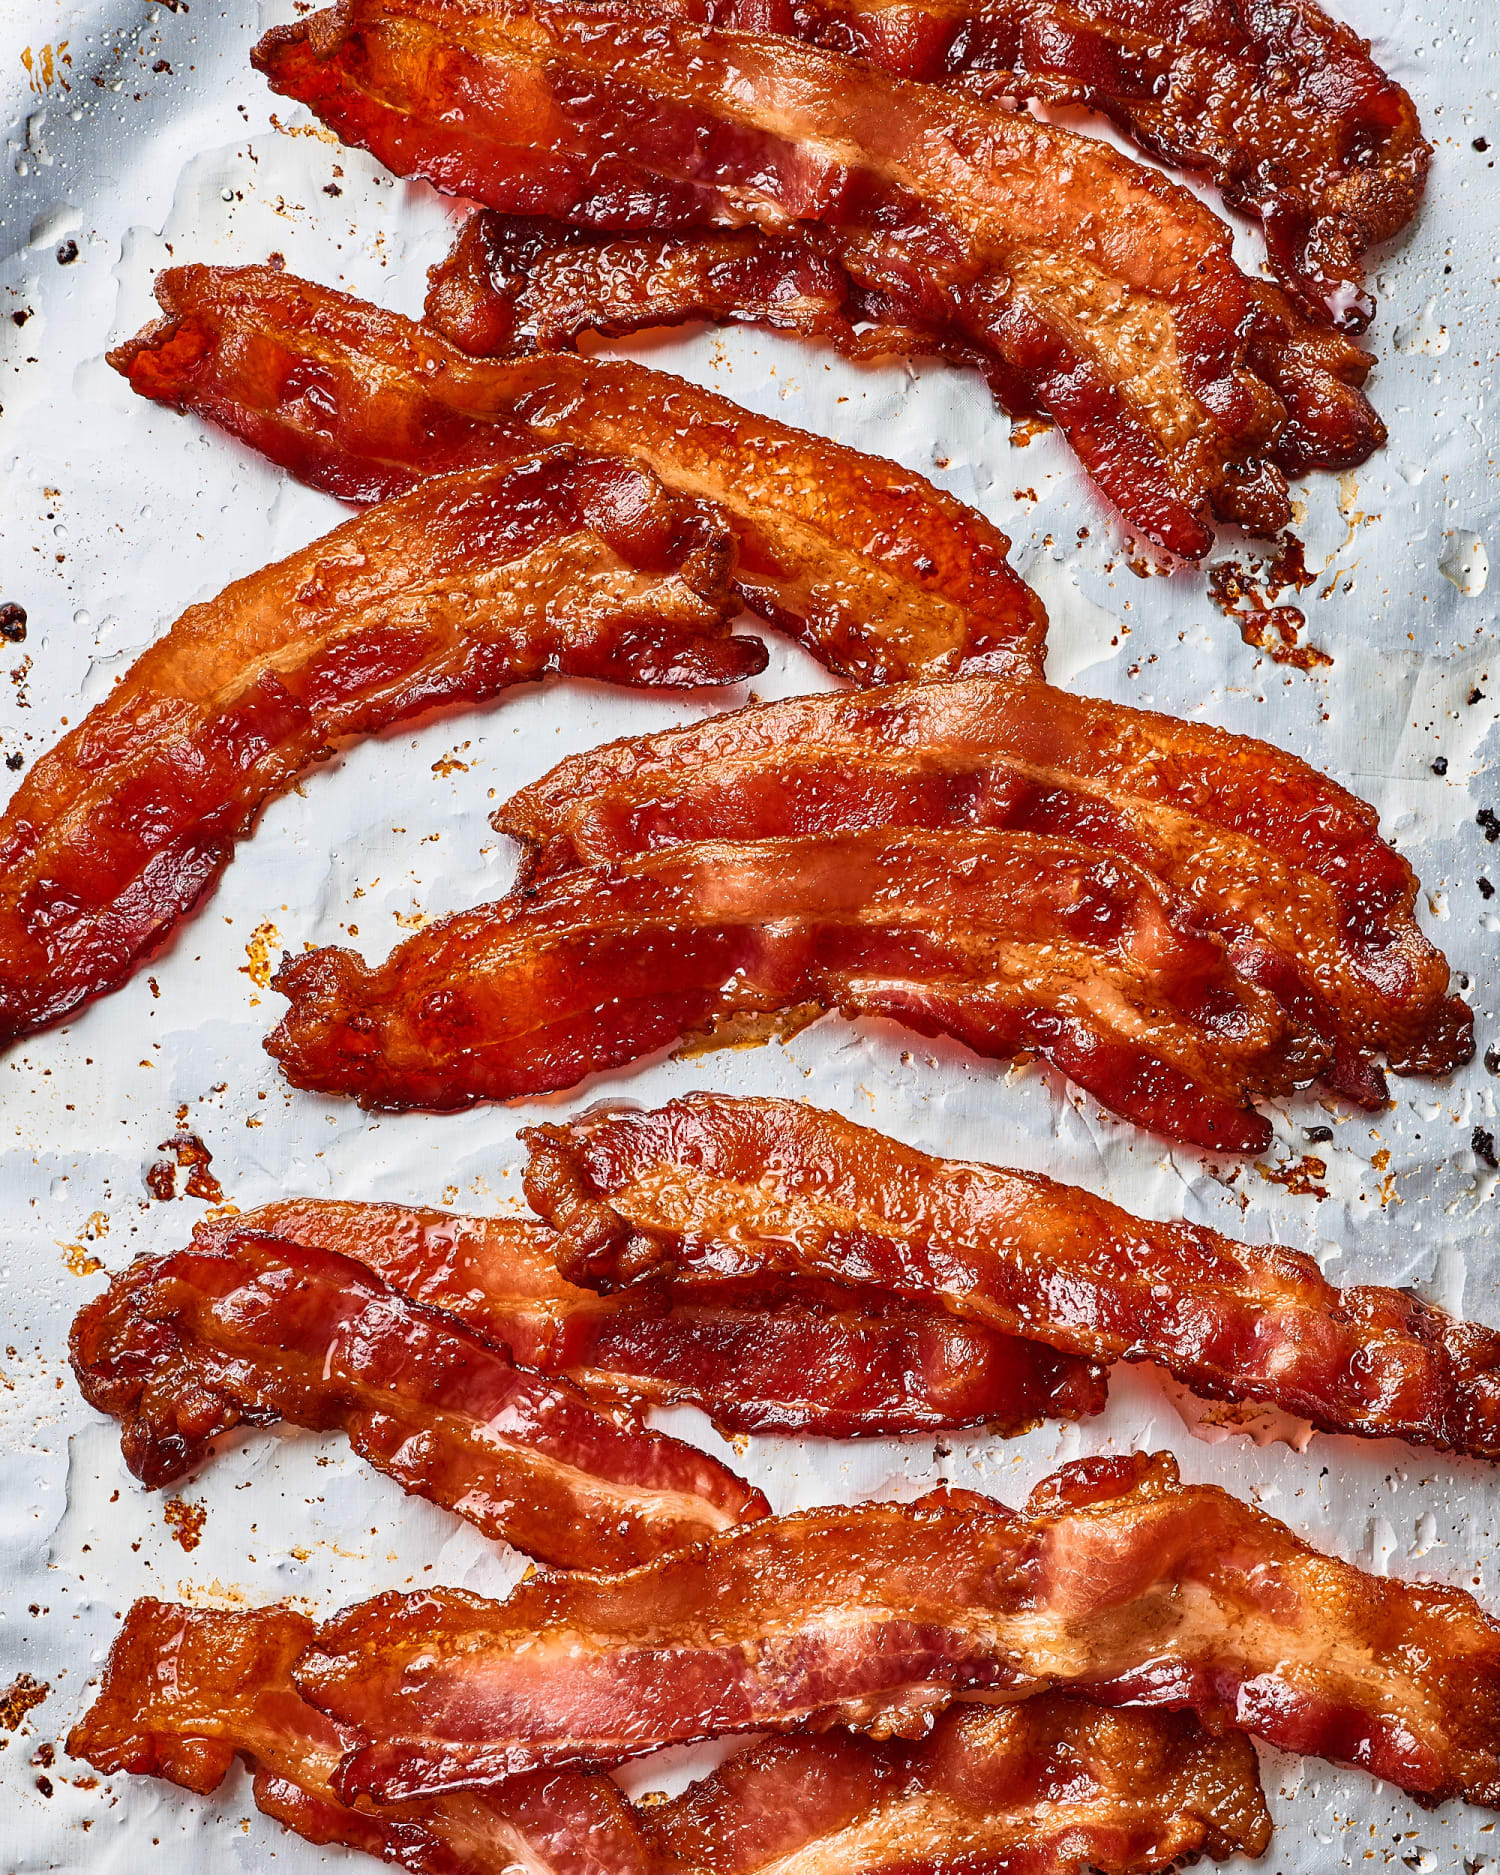 How To Make Bacon In The Oven The Simplest Easiest